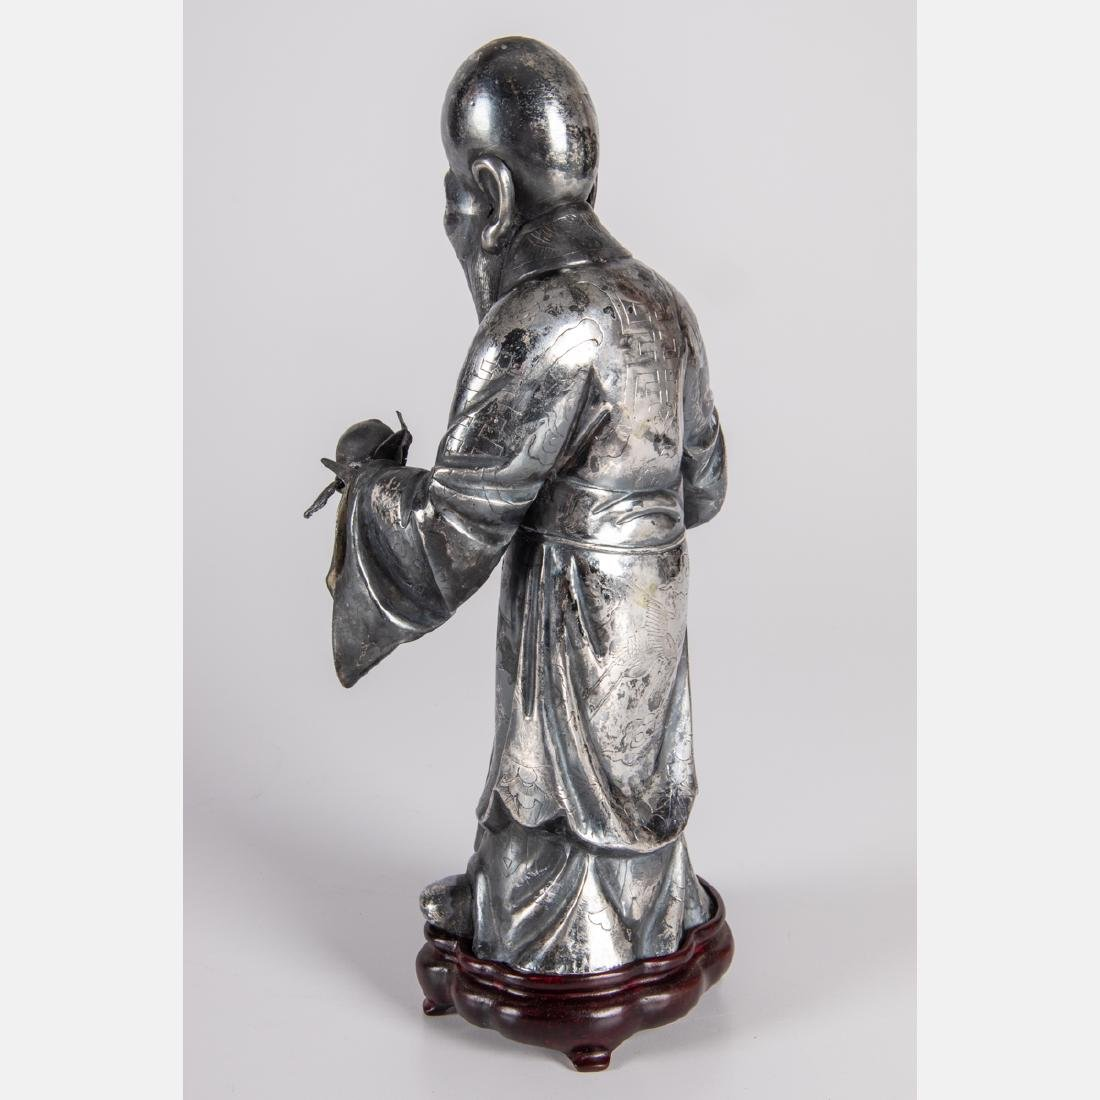 A Chinese Export Silver Figure of Shou Xing, God of - 2